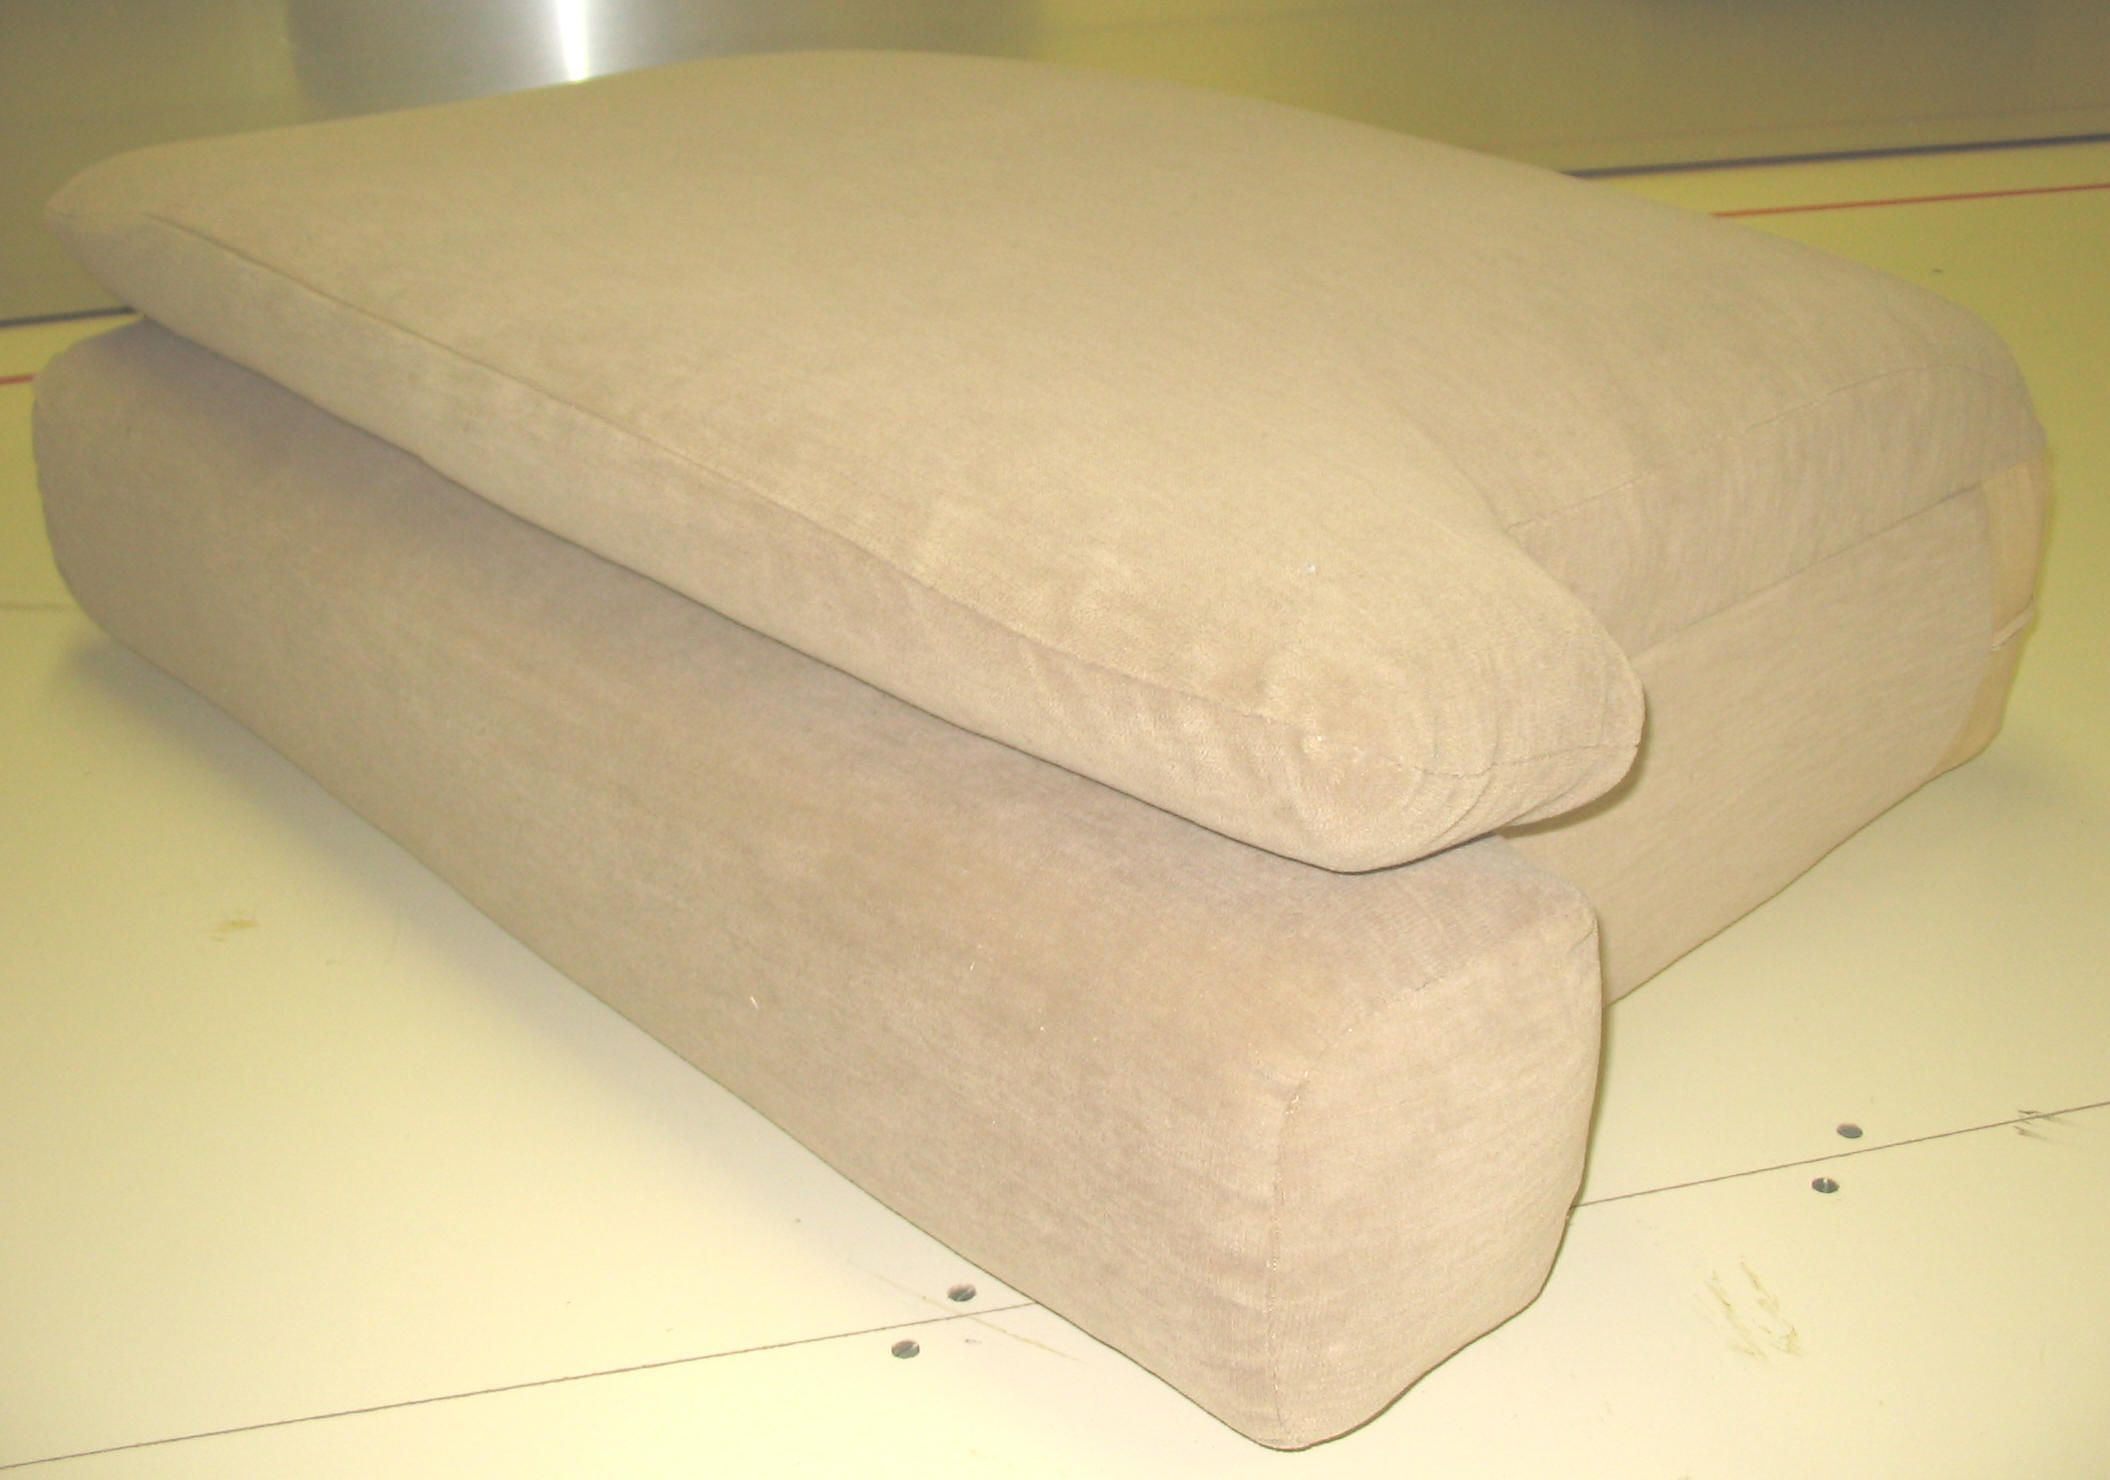 Sofa Foam Inserts Cut To Size Foam Sofa Replacement Cushion Replacement Seat